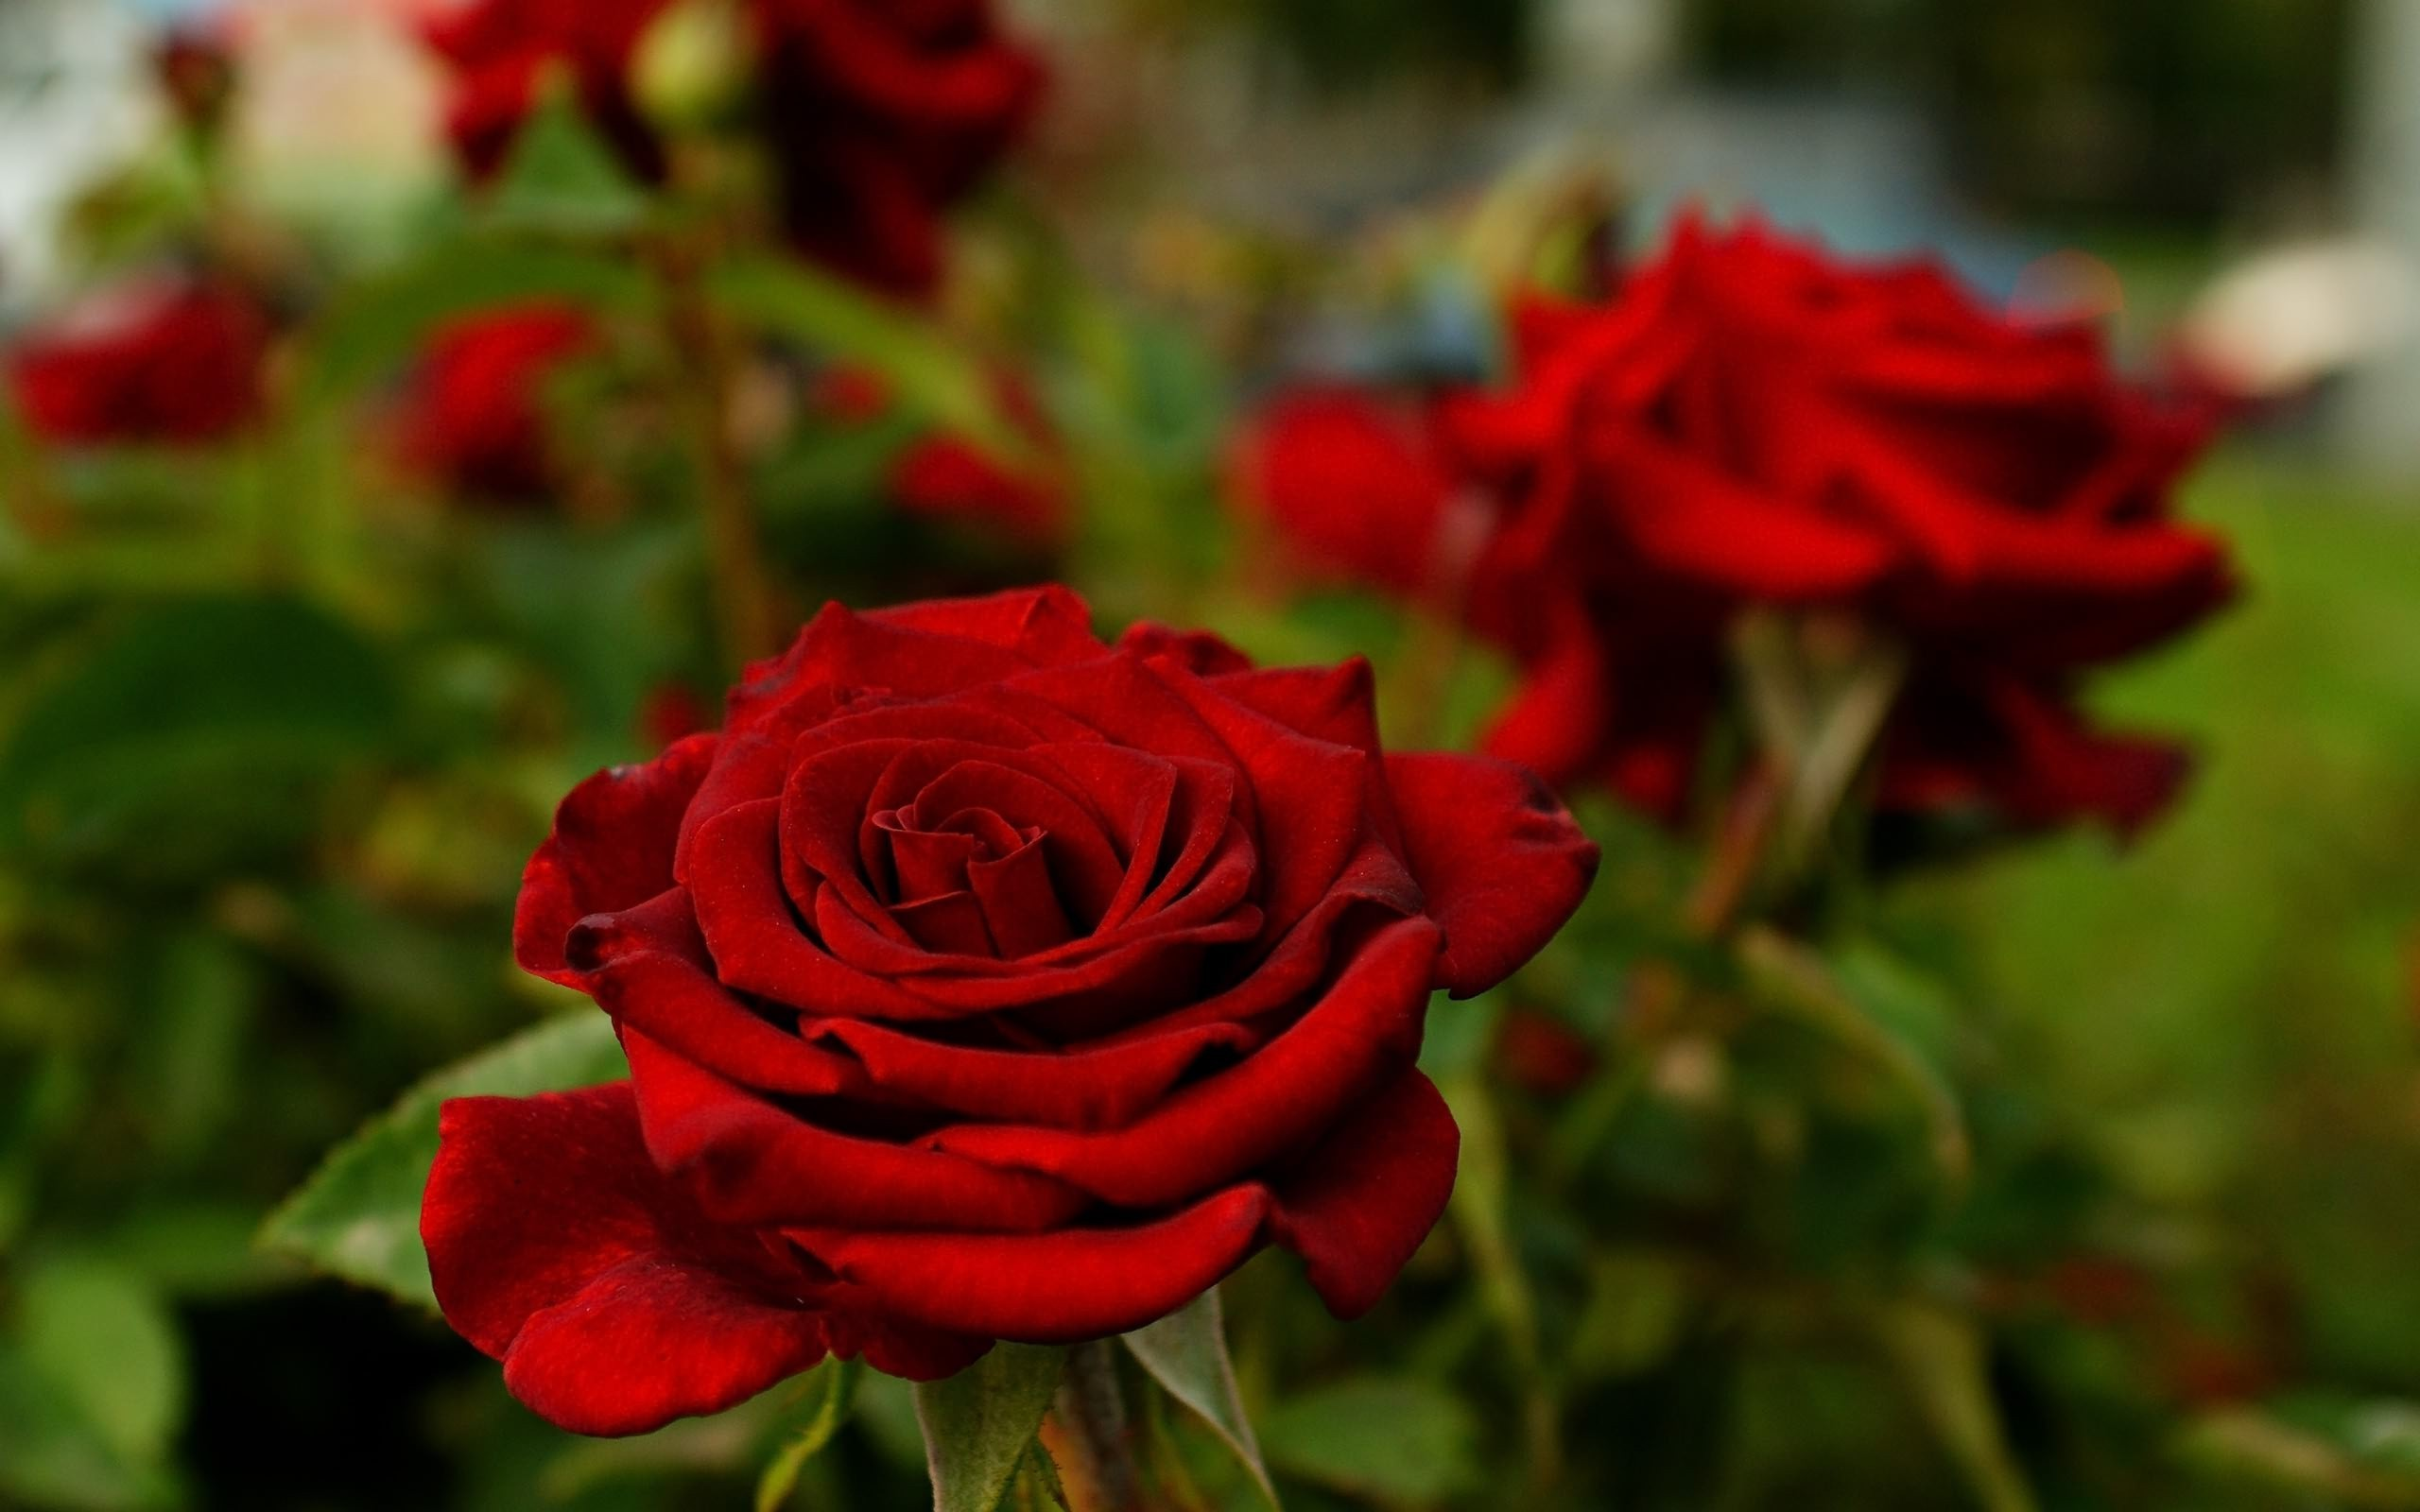 Res: 2560x1600, flowers, Rose, Depth Of Field, Nature, Red, Red Flowers Wallpapers HD /  Desktop and Mobile Backgrounds